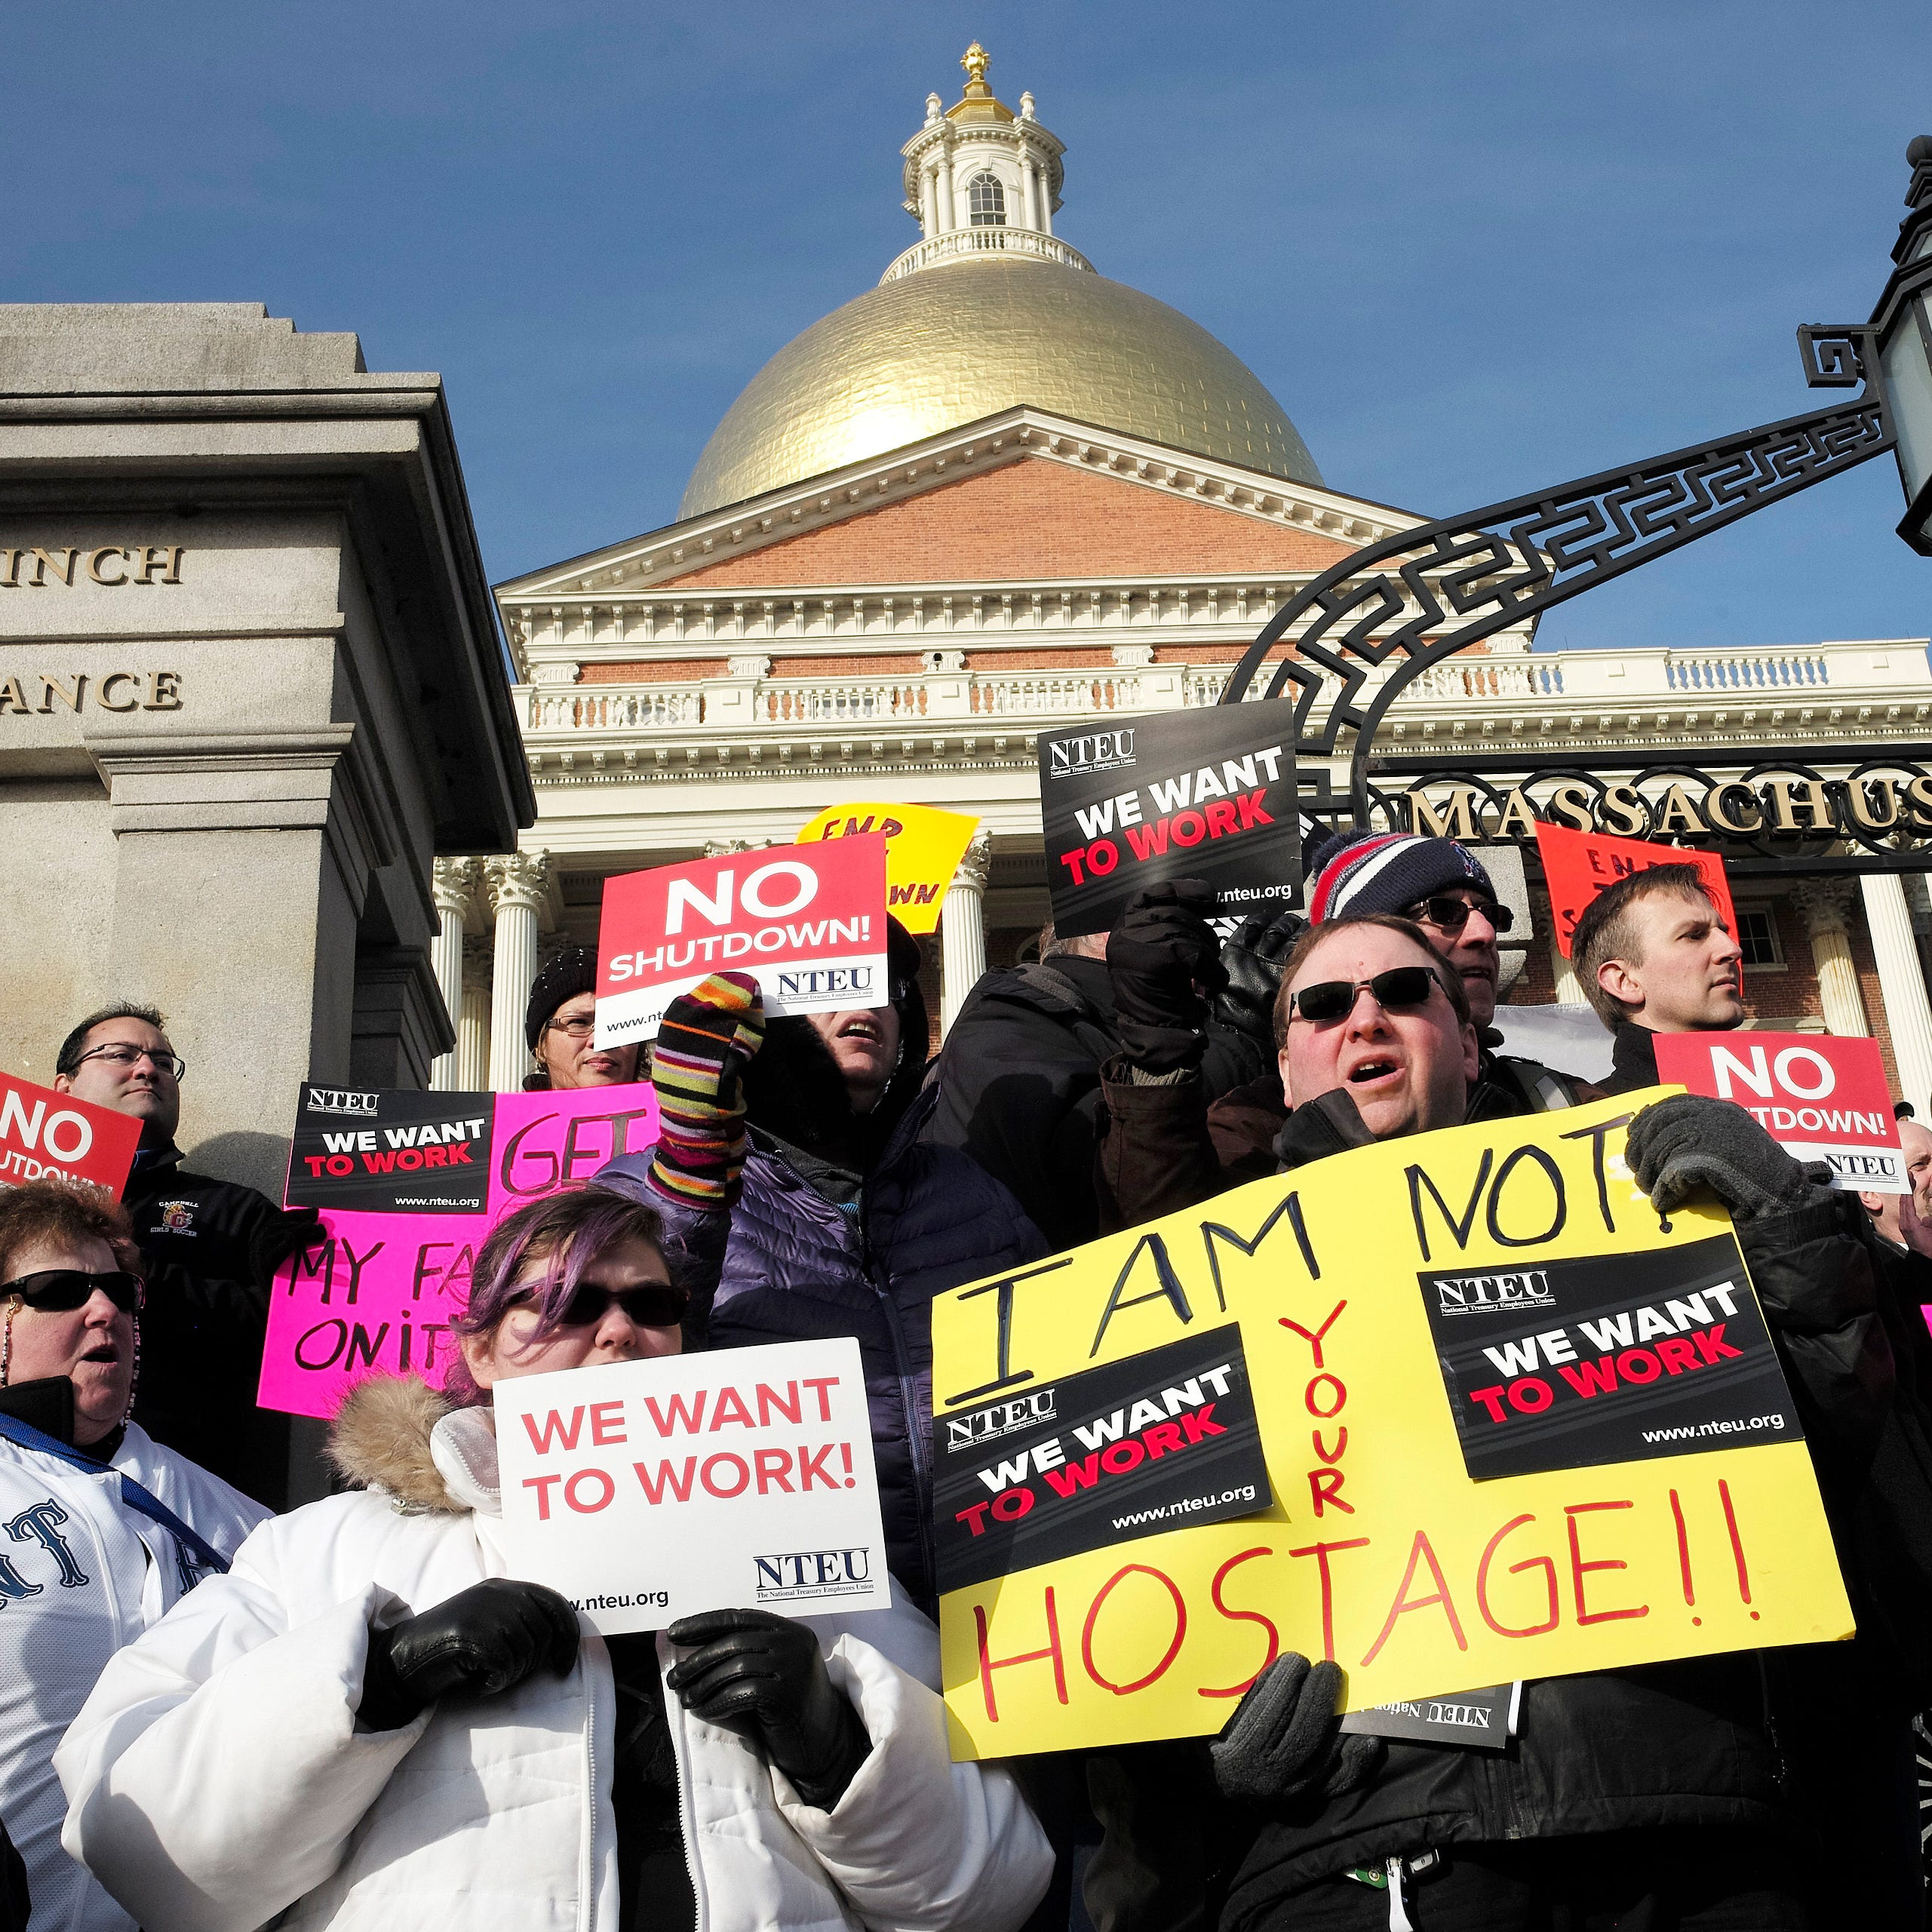 Federal employees are pictured protesting the government shutdown in front of the Statehouse in Boston.